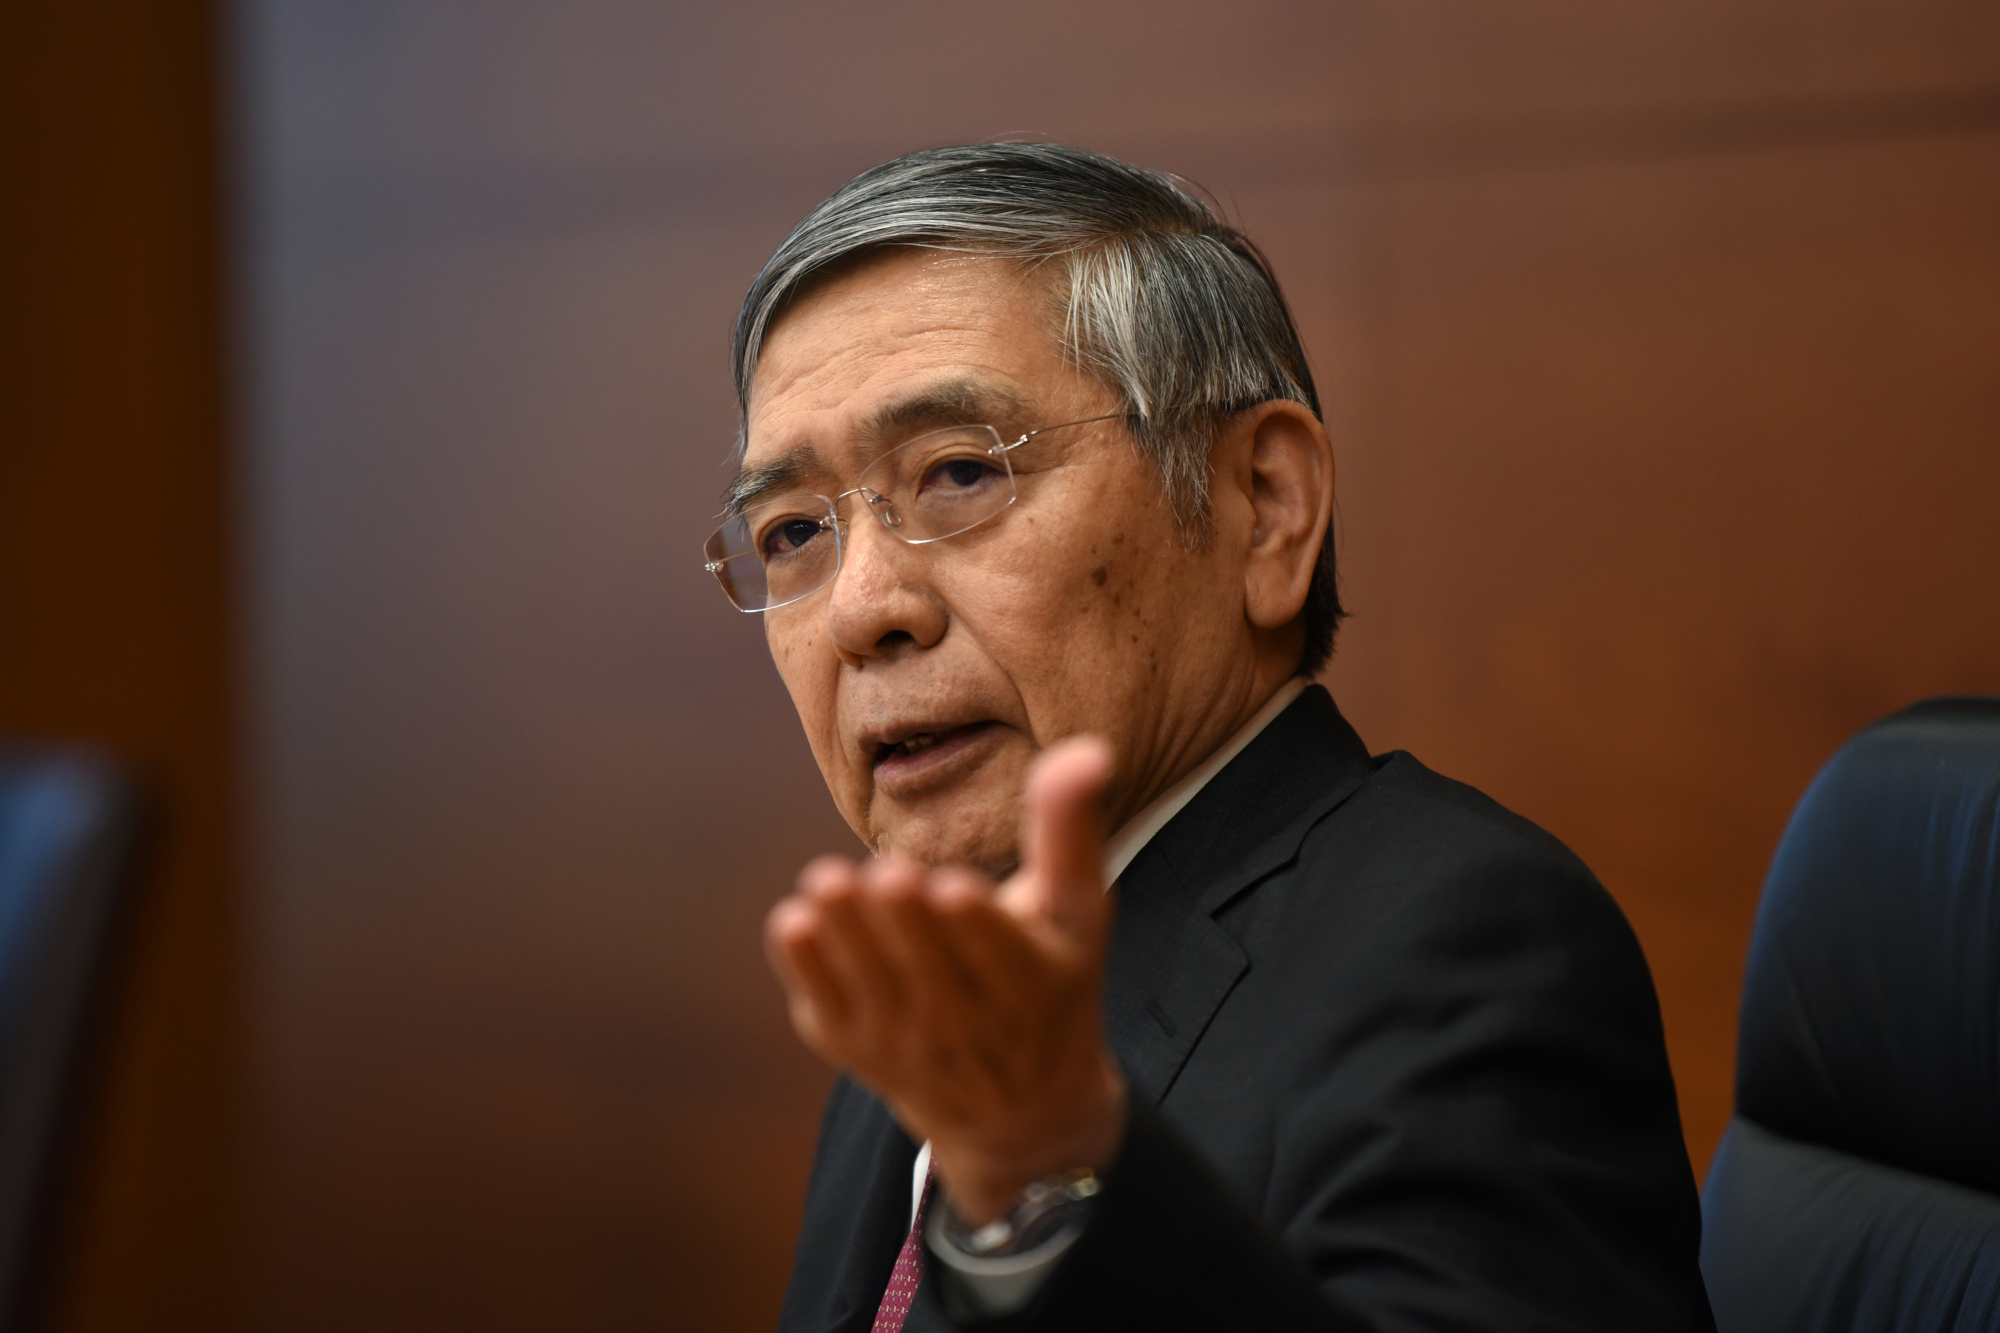 Bank of Japan Gov. Haruhiko Kuroda gestures at a news conference at the central bank's headquarters in Tokyo on Sept. 19. | BLOOMBERG